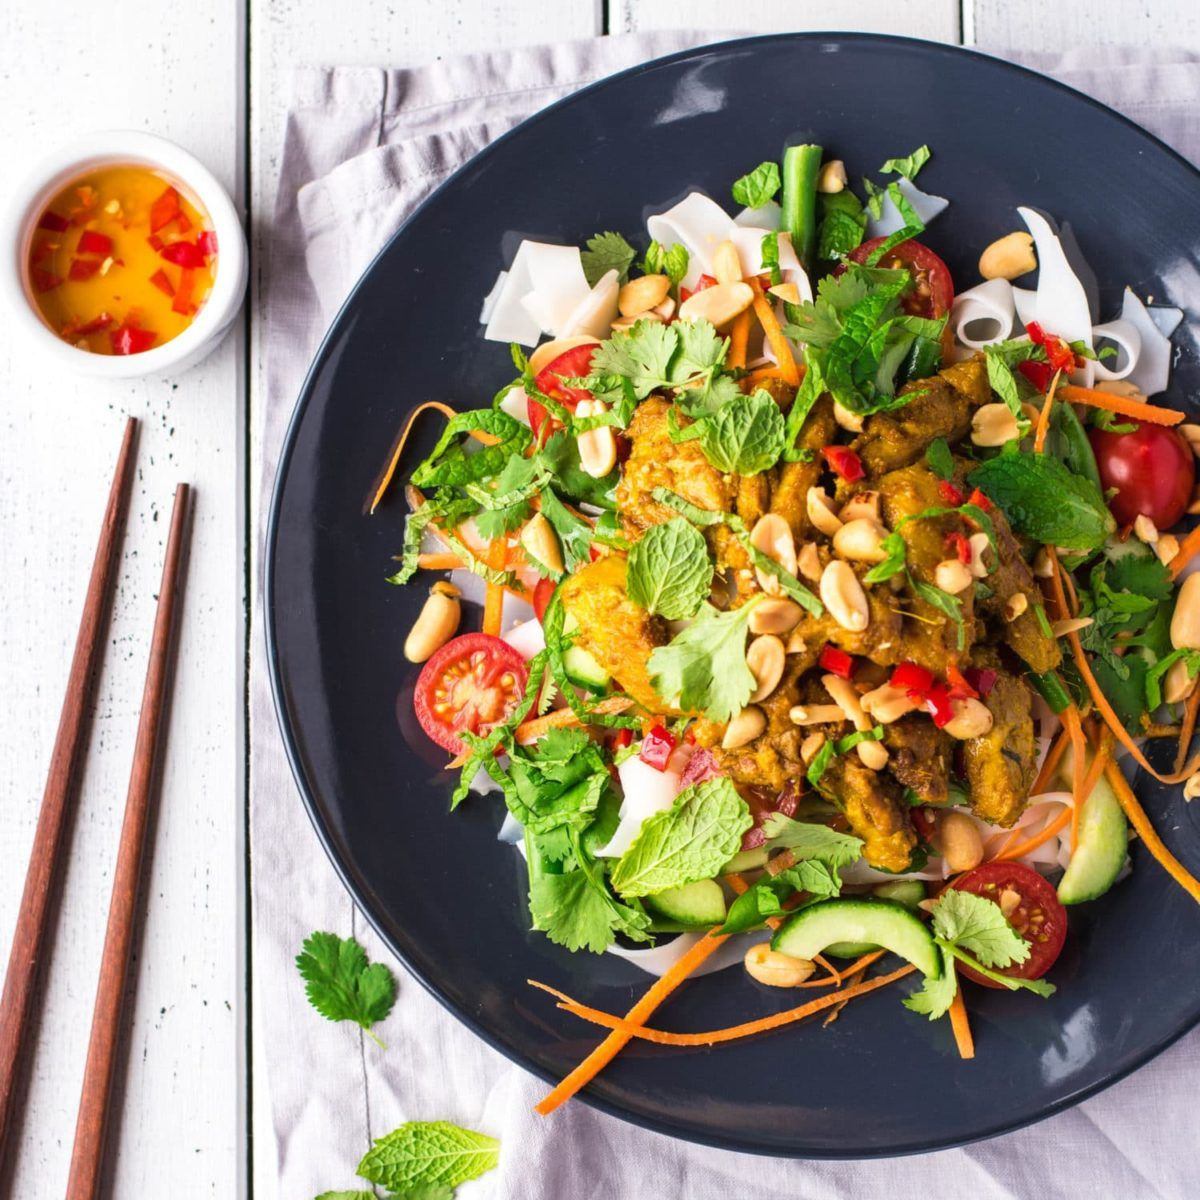 I picked up this Lemongrass Chicken Noodle Salad recipe in Vietnam and have put my own spin on it, adding rice stick noodles and lots of fresh vegetables.